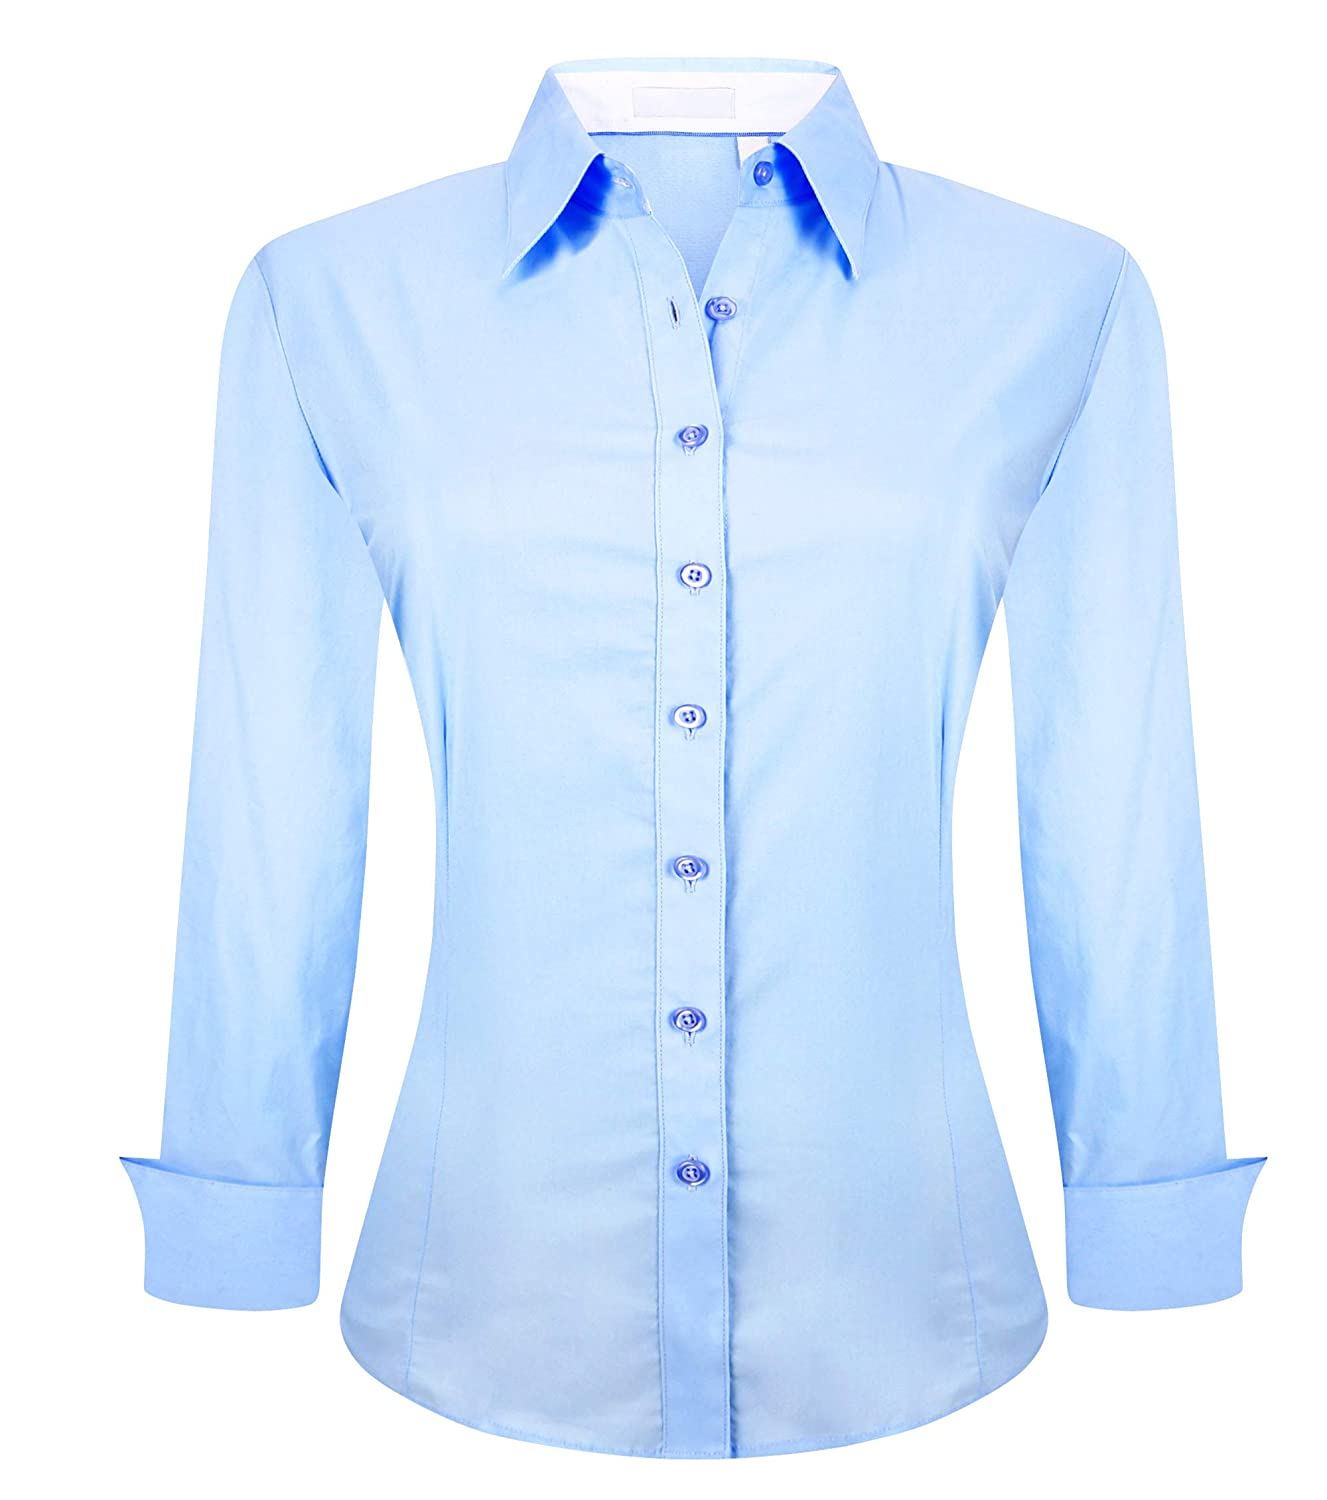 070dede3da0 Material:Our women button down shirts is made from 97%cotton3%spandex,ultra  soft,comfortable and stretchy,provides you more freedoms